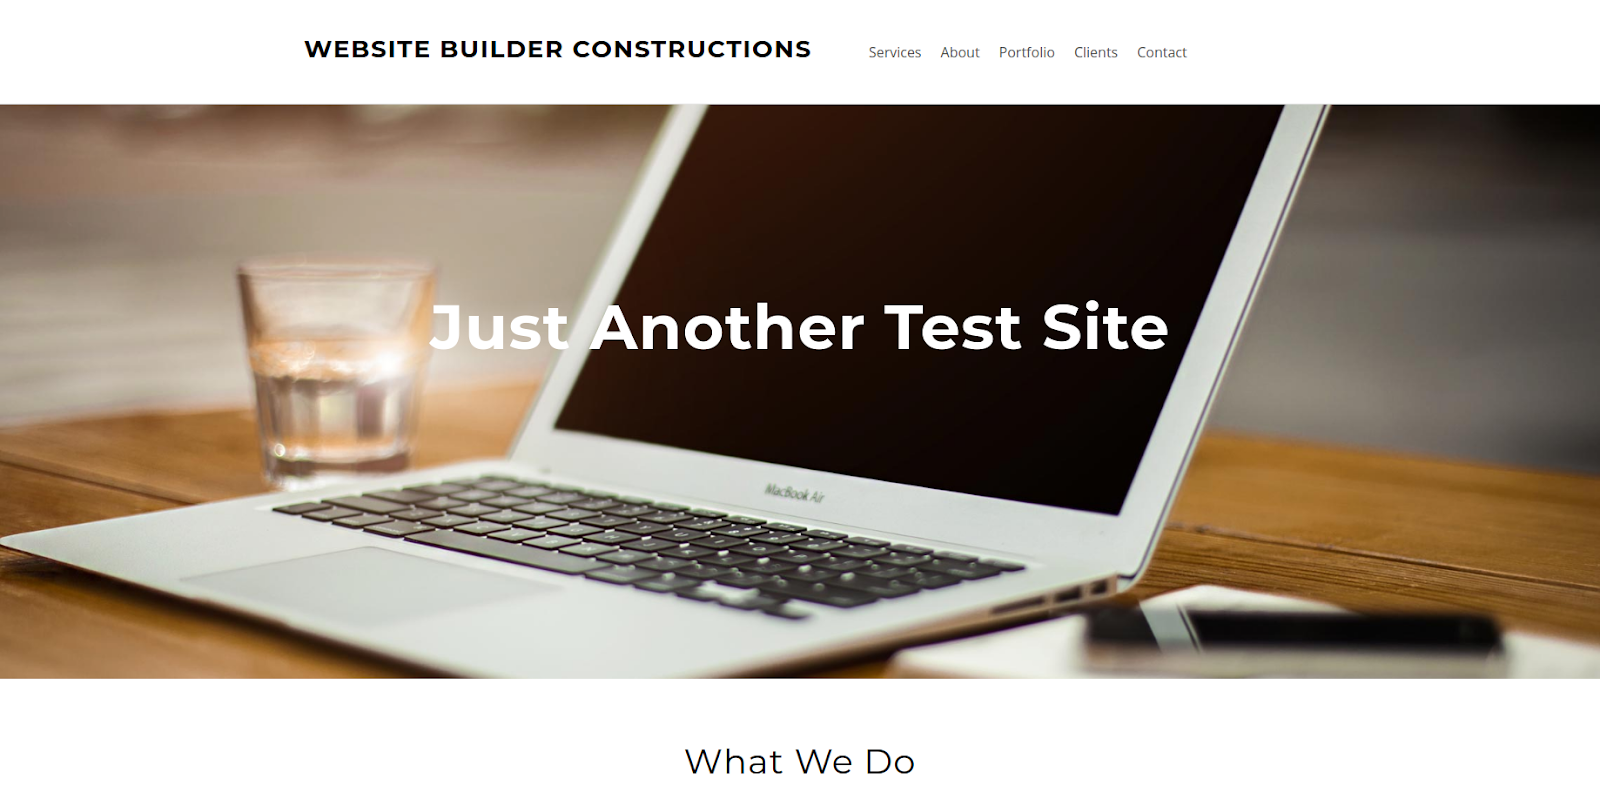 weebly website builder test site